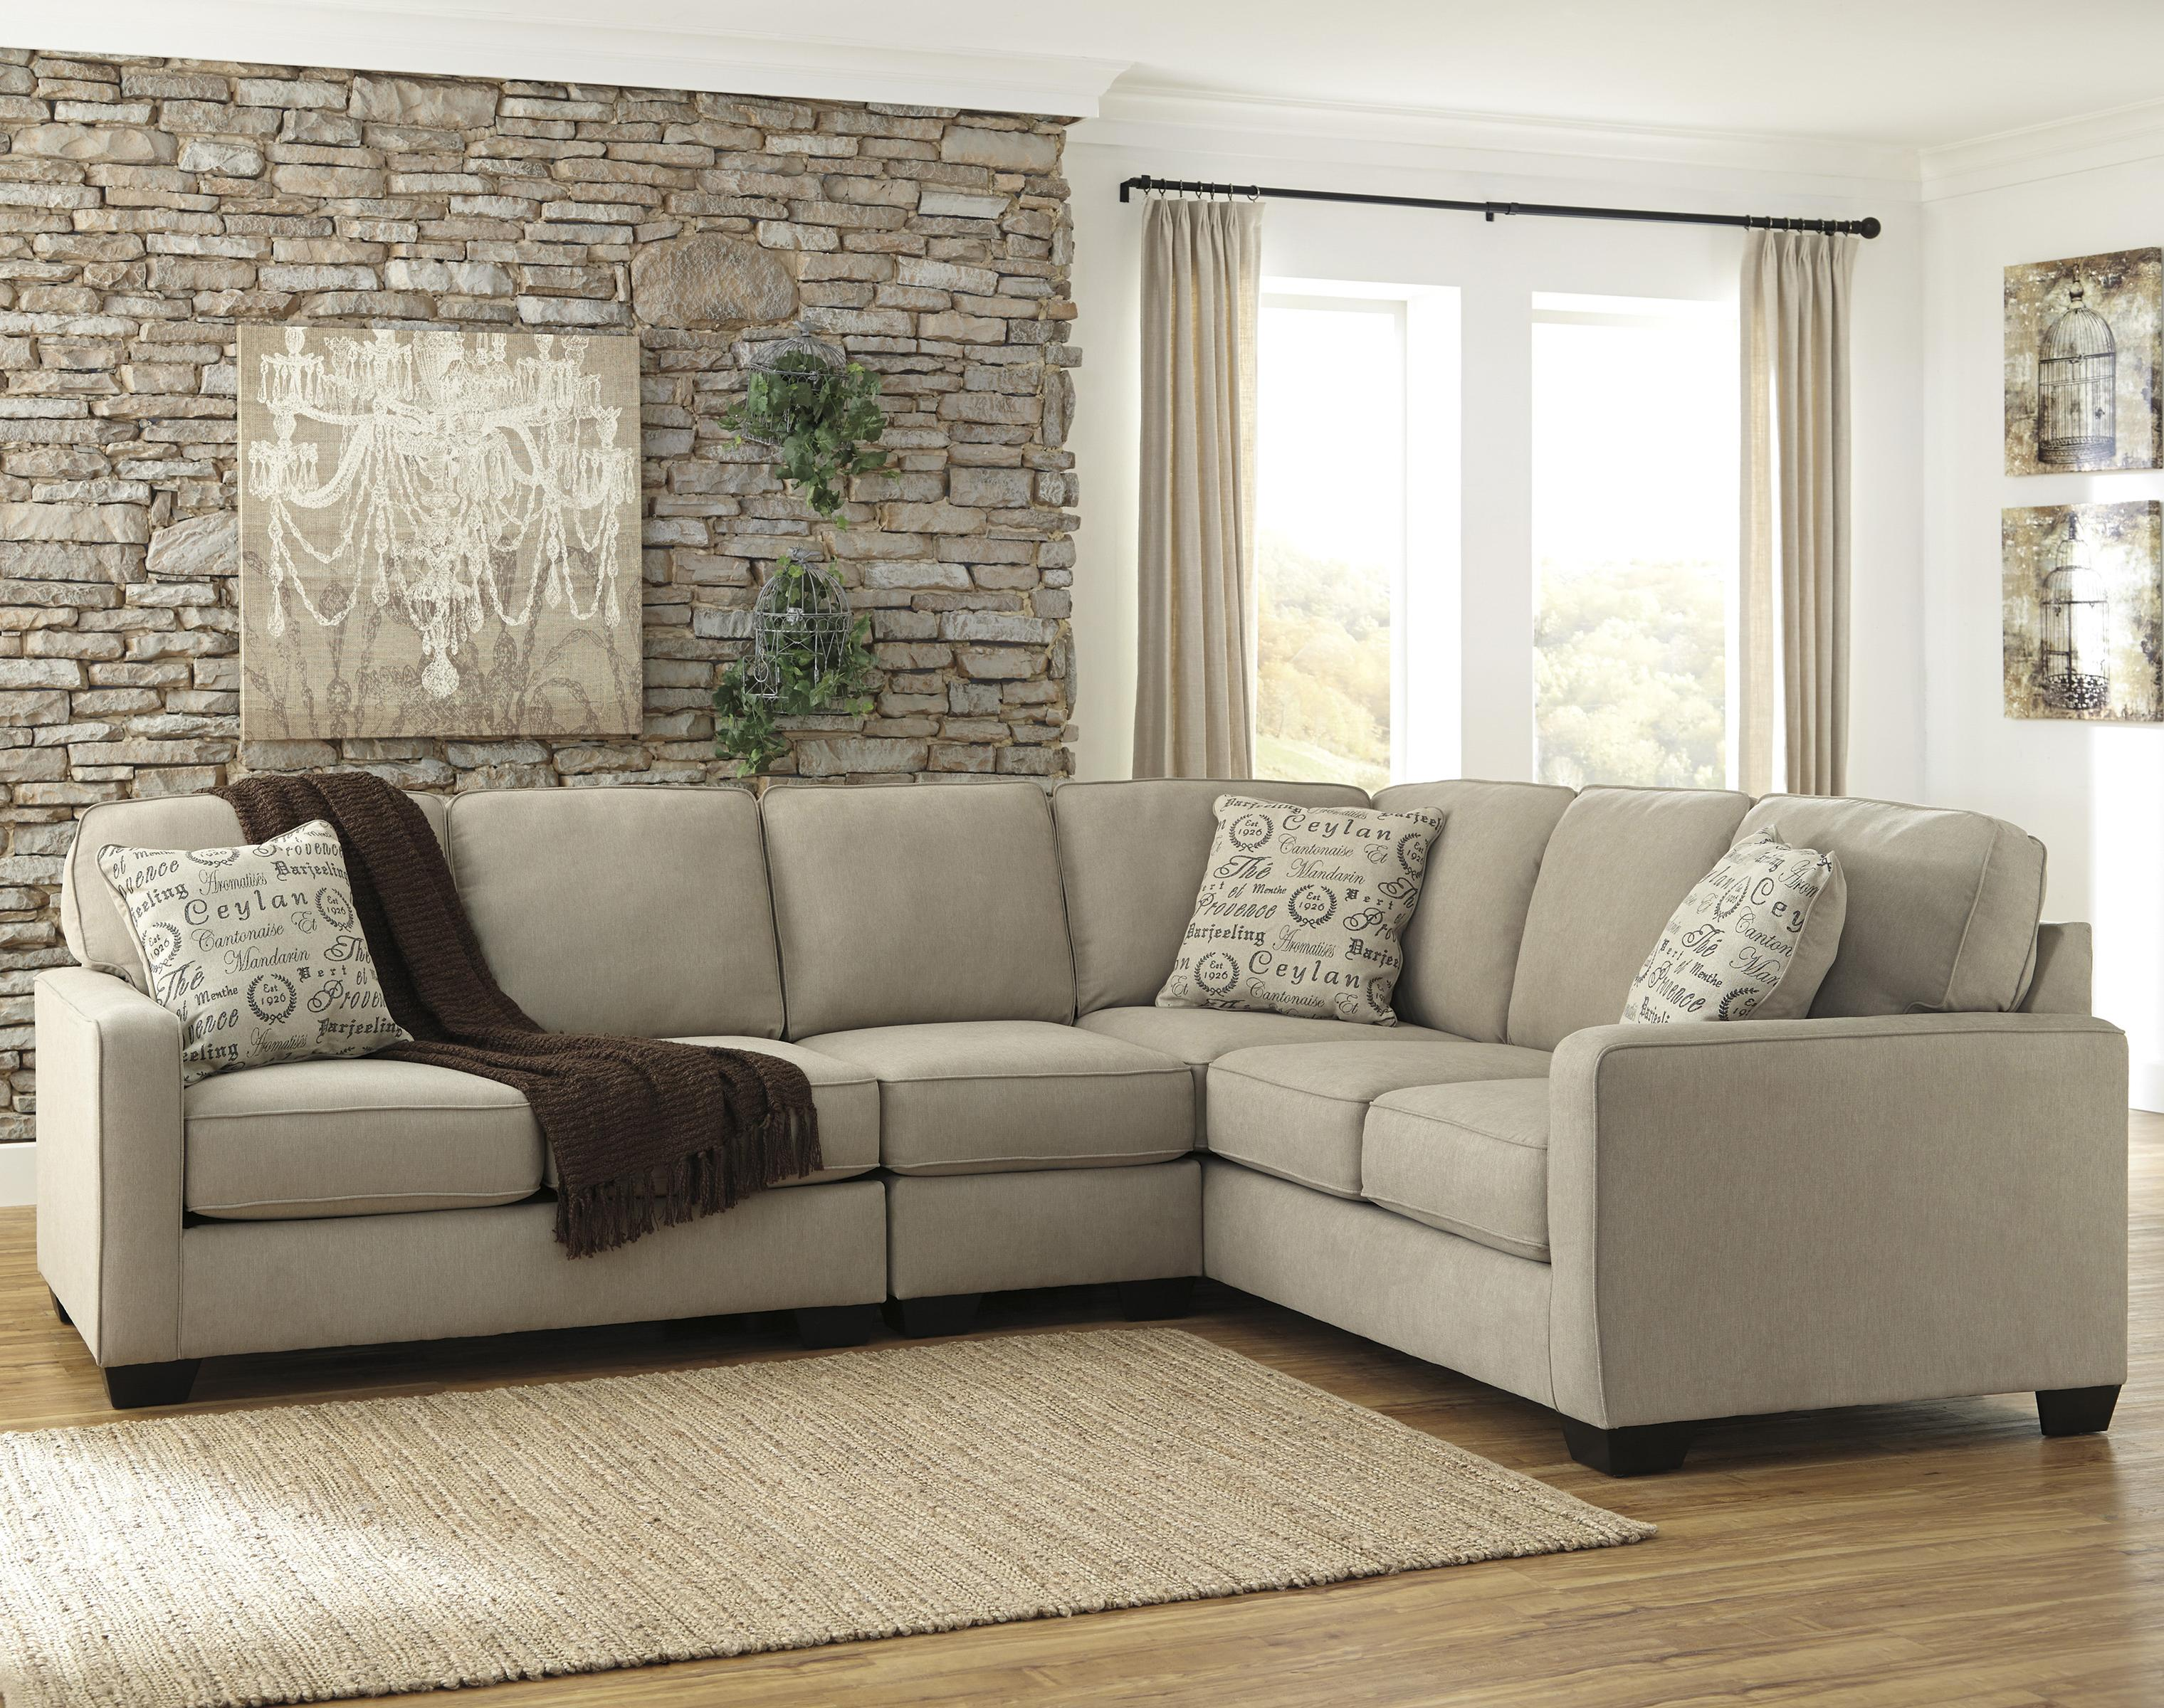 Alenya - Quartz 3-Piece Sectional with Left Loveseat by Signature Design by Ashley at Beds N Stuff